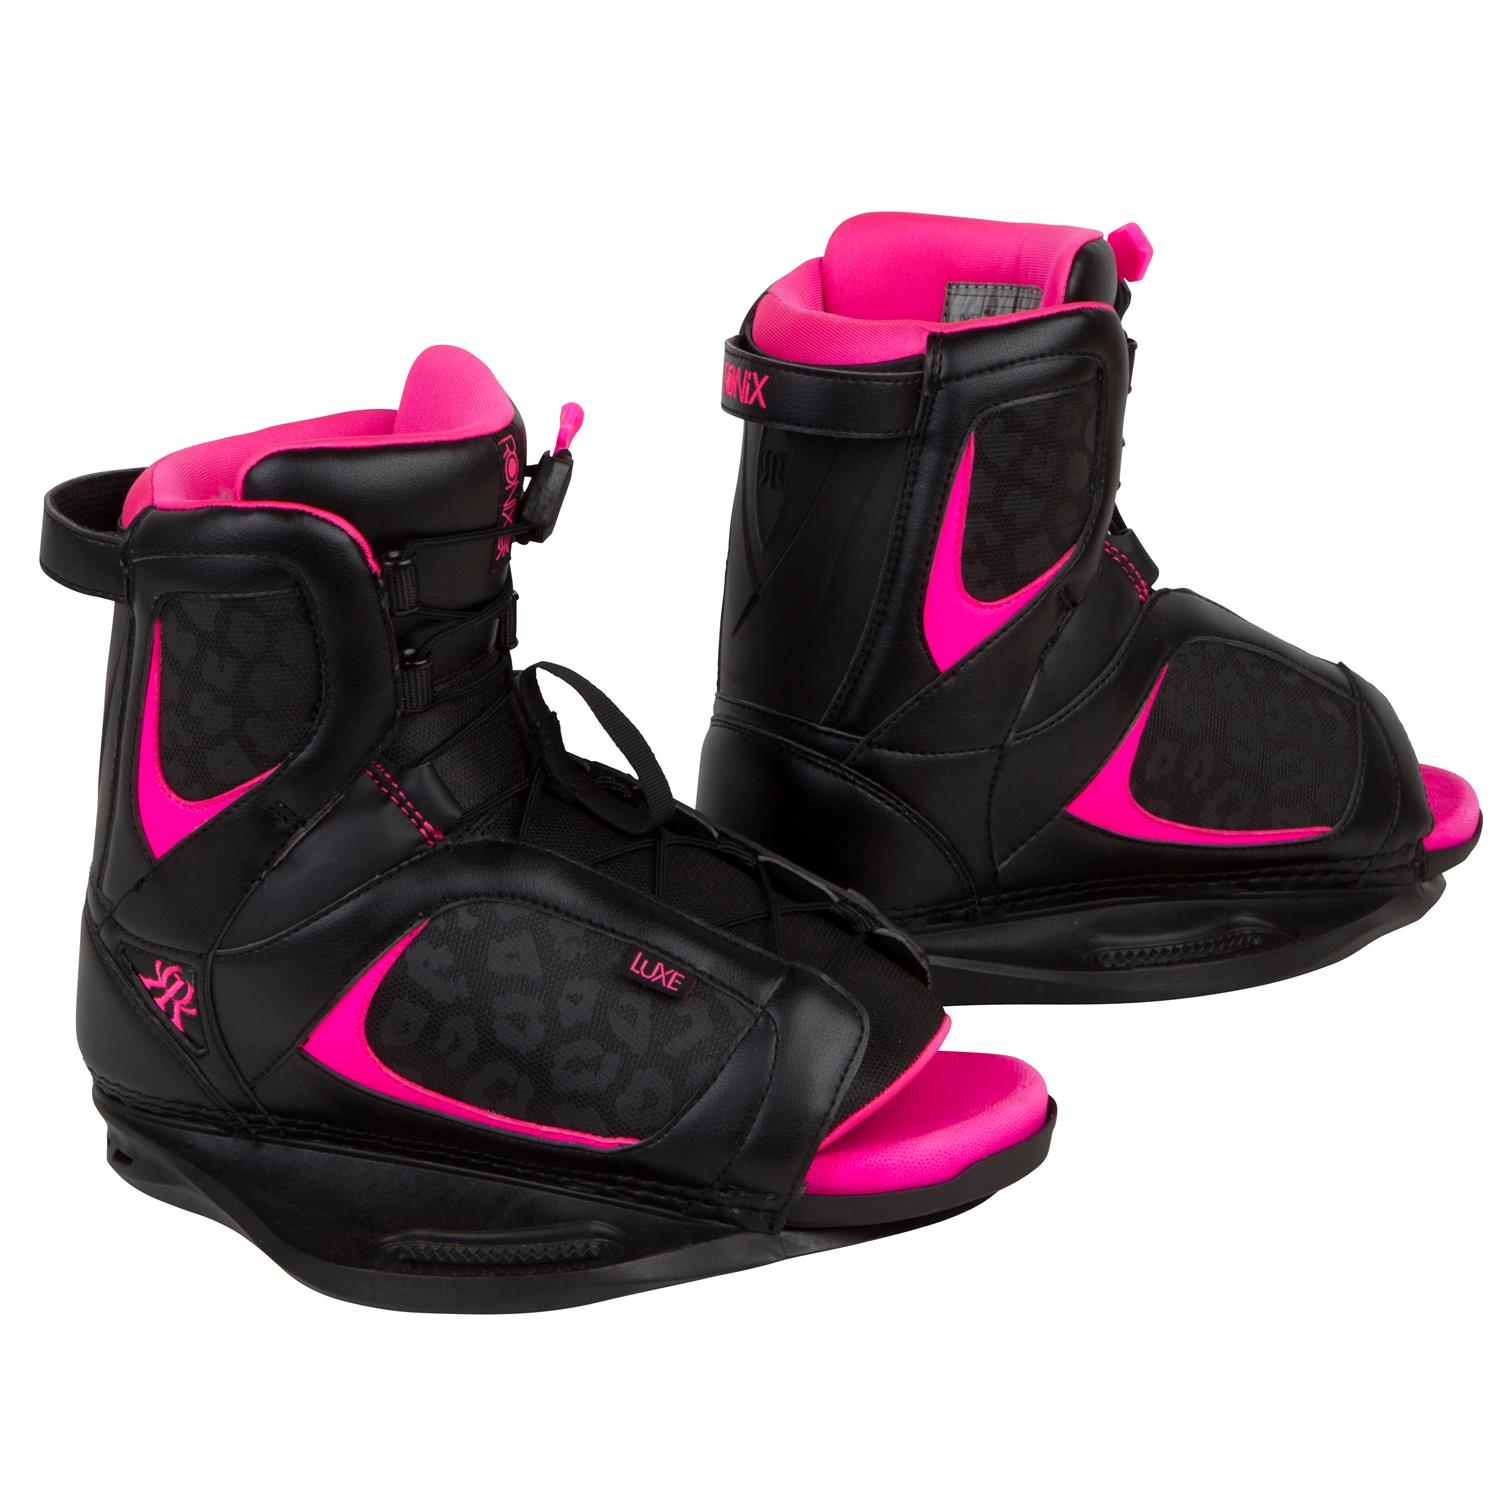 Ronix Krush Wakeboard + Luxe Bindings - Women's 2014